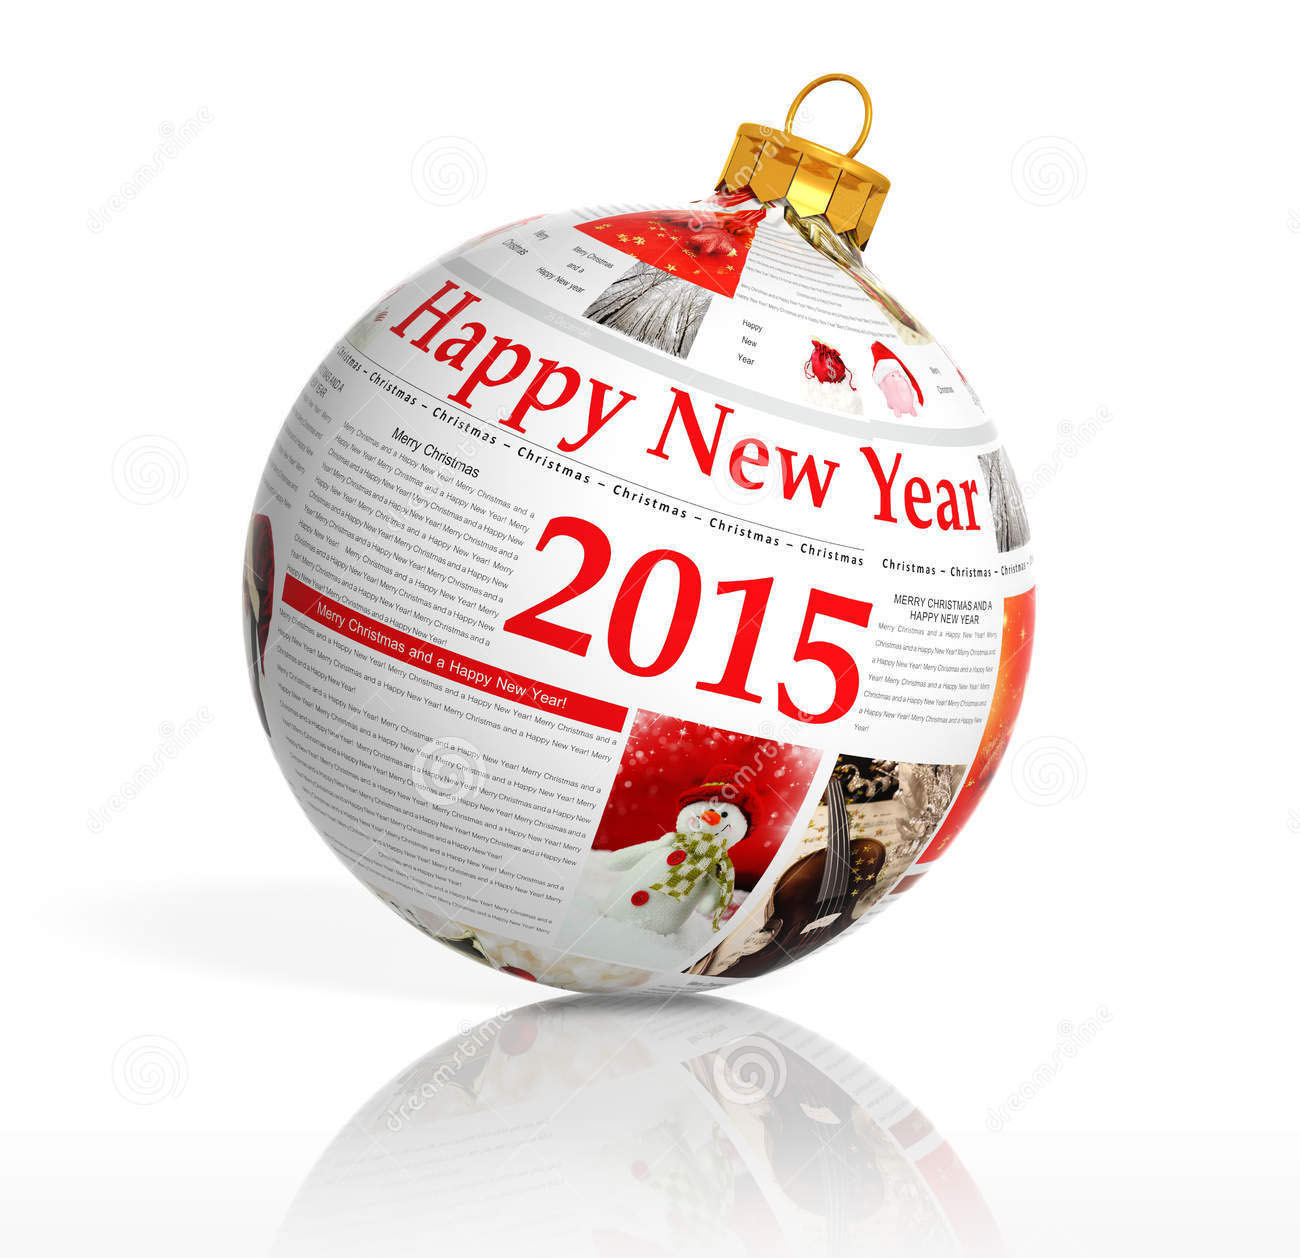 2015 hppy new year profile